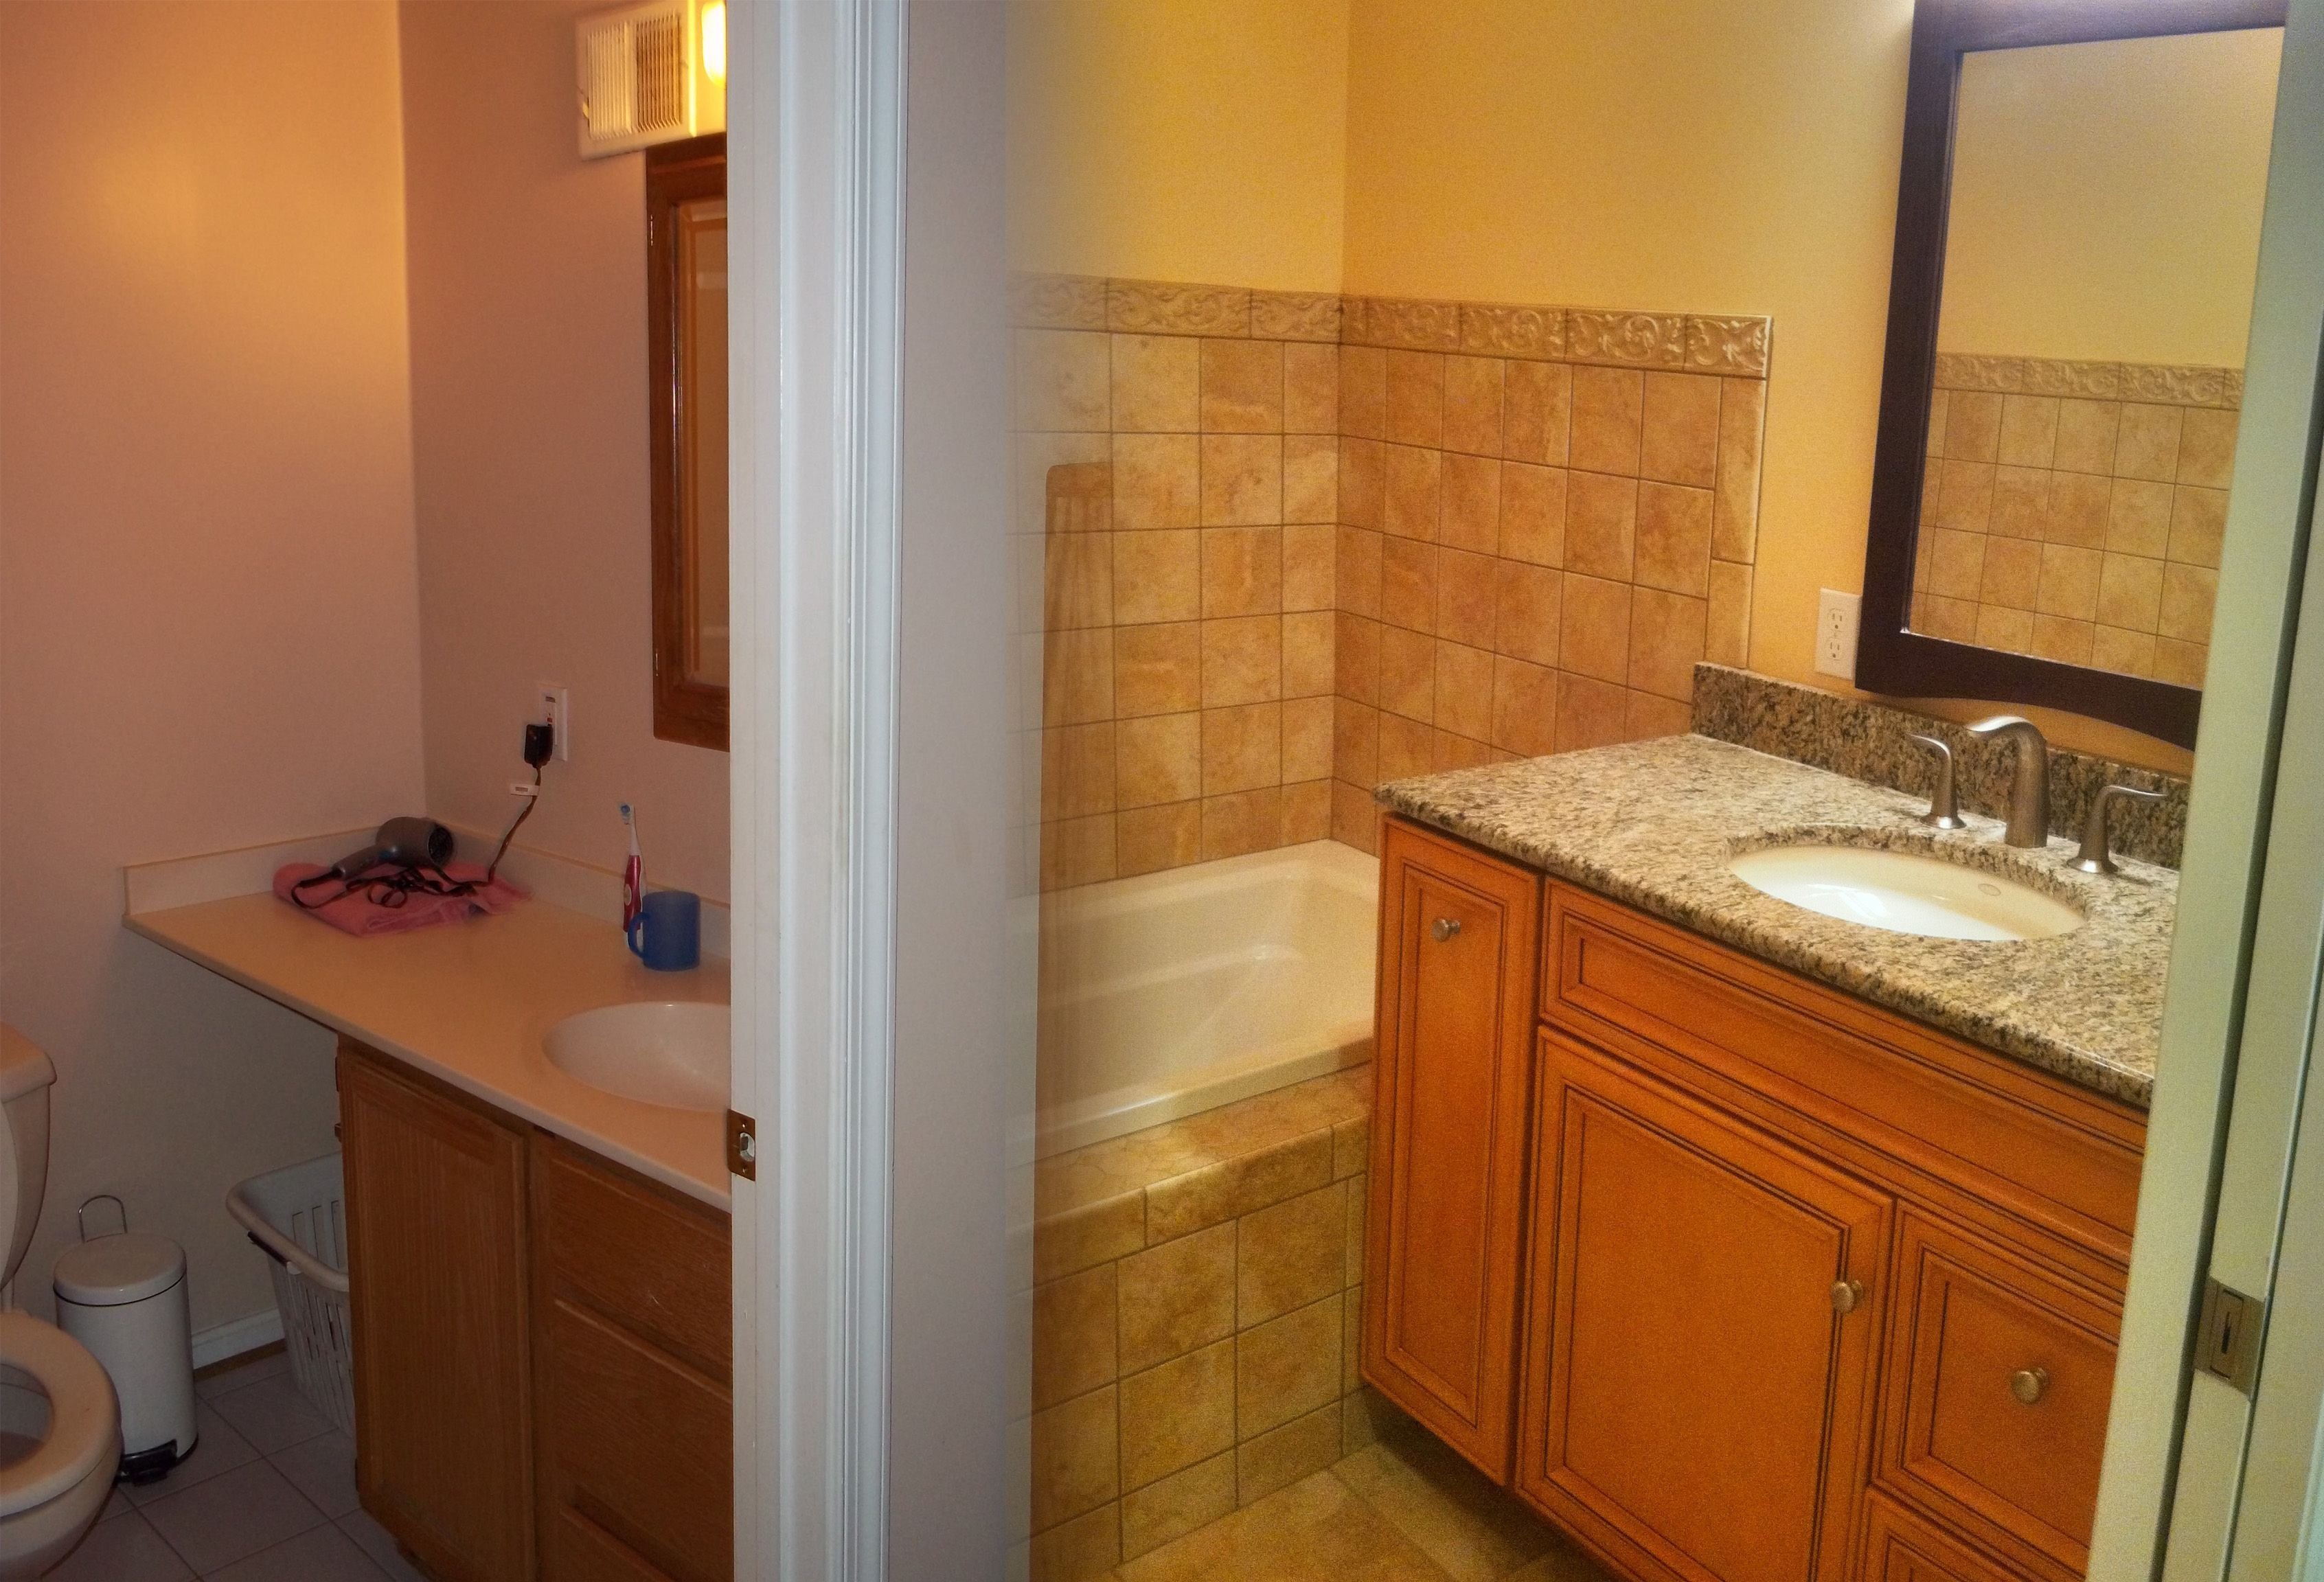 Remodel Pictures Before And After 1960s bathroom renovation before and after |  , & bathroom